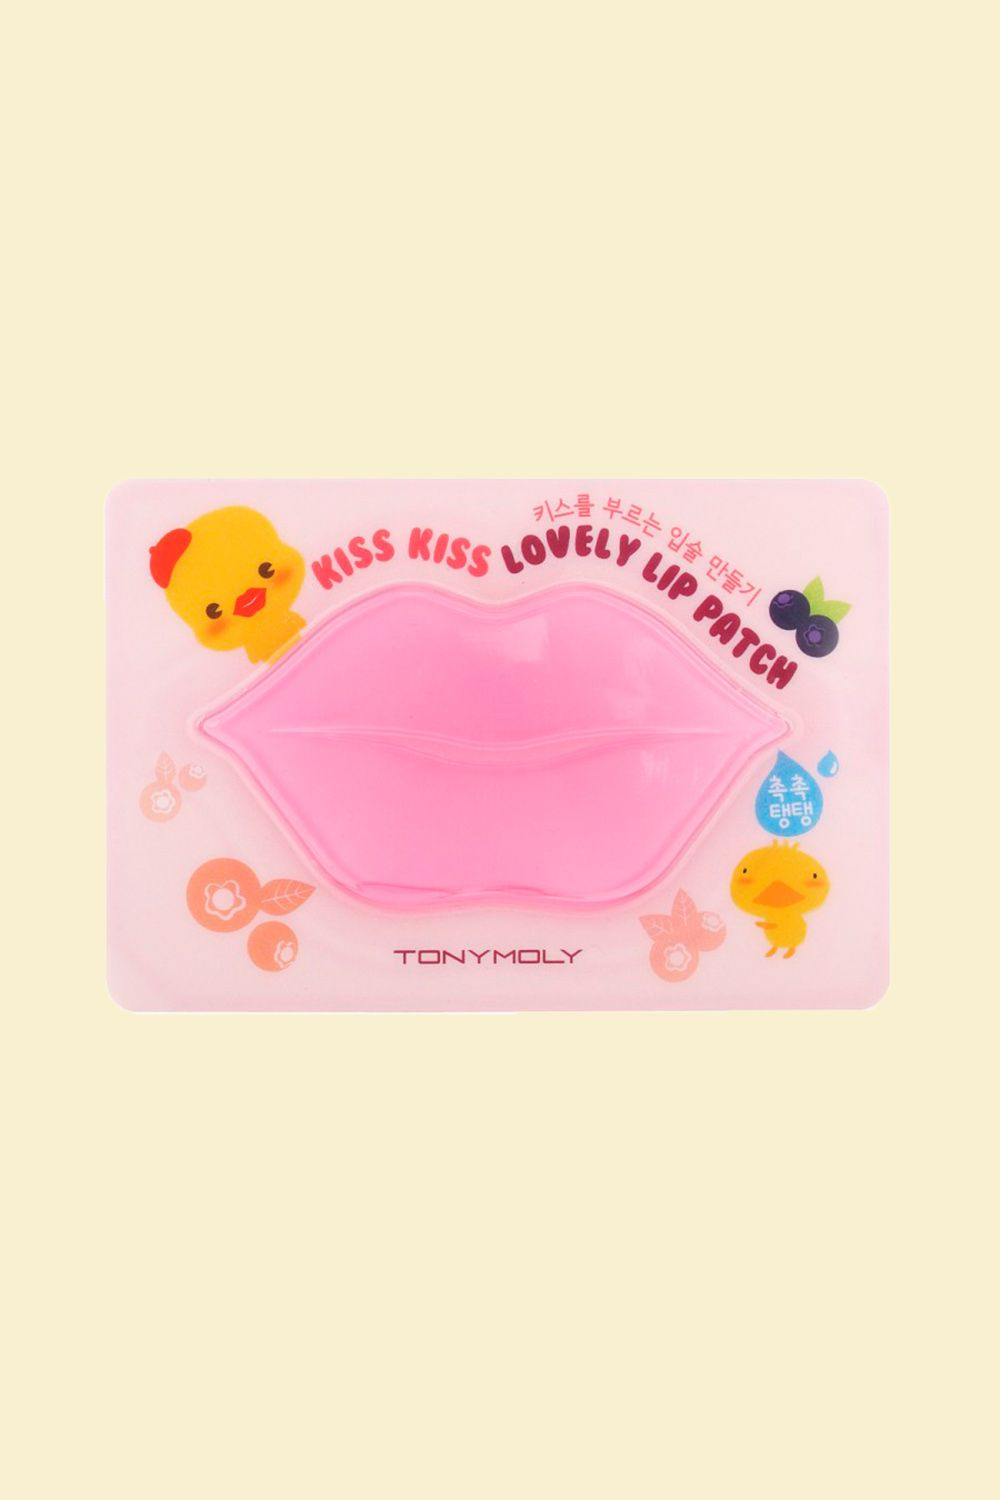 """<p>This blueberry-flavored, single-use patch is an utter delight. But don't be fooled by it's sweet fragranceor silly packaging, it still packs quite the punch. Smack it on for 15-20 minutes, then pat the remaining essence in for a soft, supplepout.</p><p><br></p><p>Tony Moly Kiss KIss Lovely Lip Patch, $4 (1 Pack); <a href=""""https://www.peachandlily.com/products/tony-moly-kiss-kiss-lovely-lip-patch"""" target=""""_blank"""" data-tracking-id=""""recirc-text-link"""">peachandlily.com</a>.<span class=""""redactor-invisible-space"""" data-verified=""""redactor"""" data-redactor-tag=""""span"""" data-redactor-class=""""redactor-invisible-space""""></span></p>"""